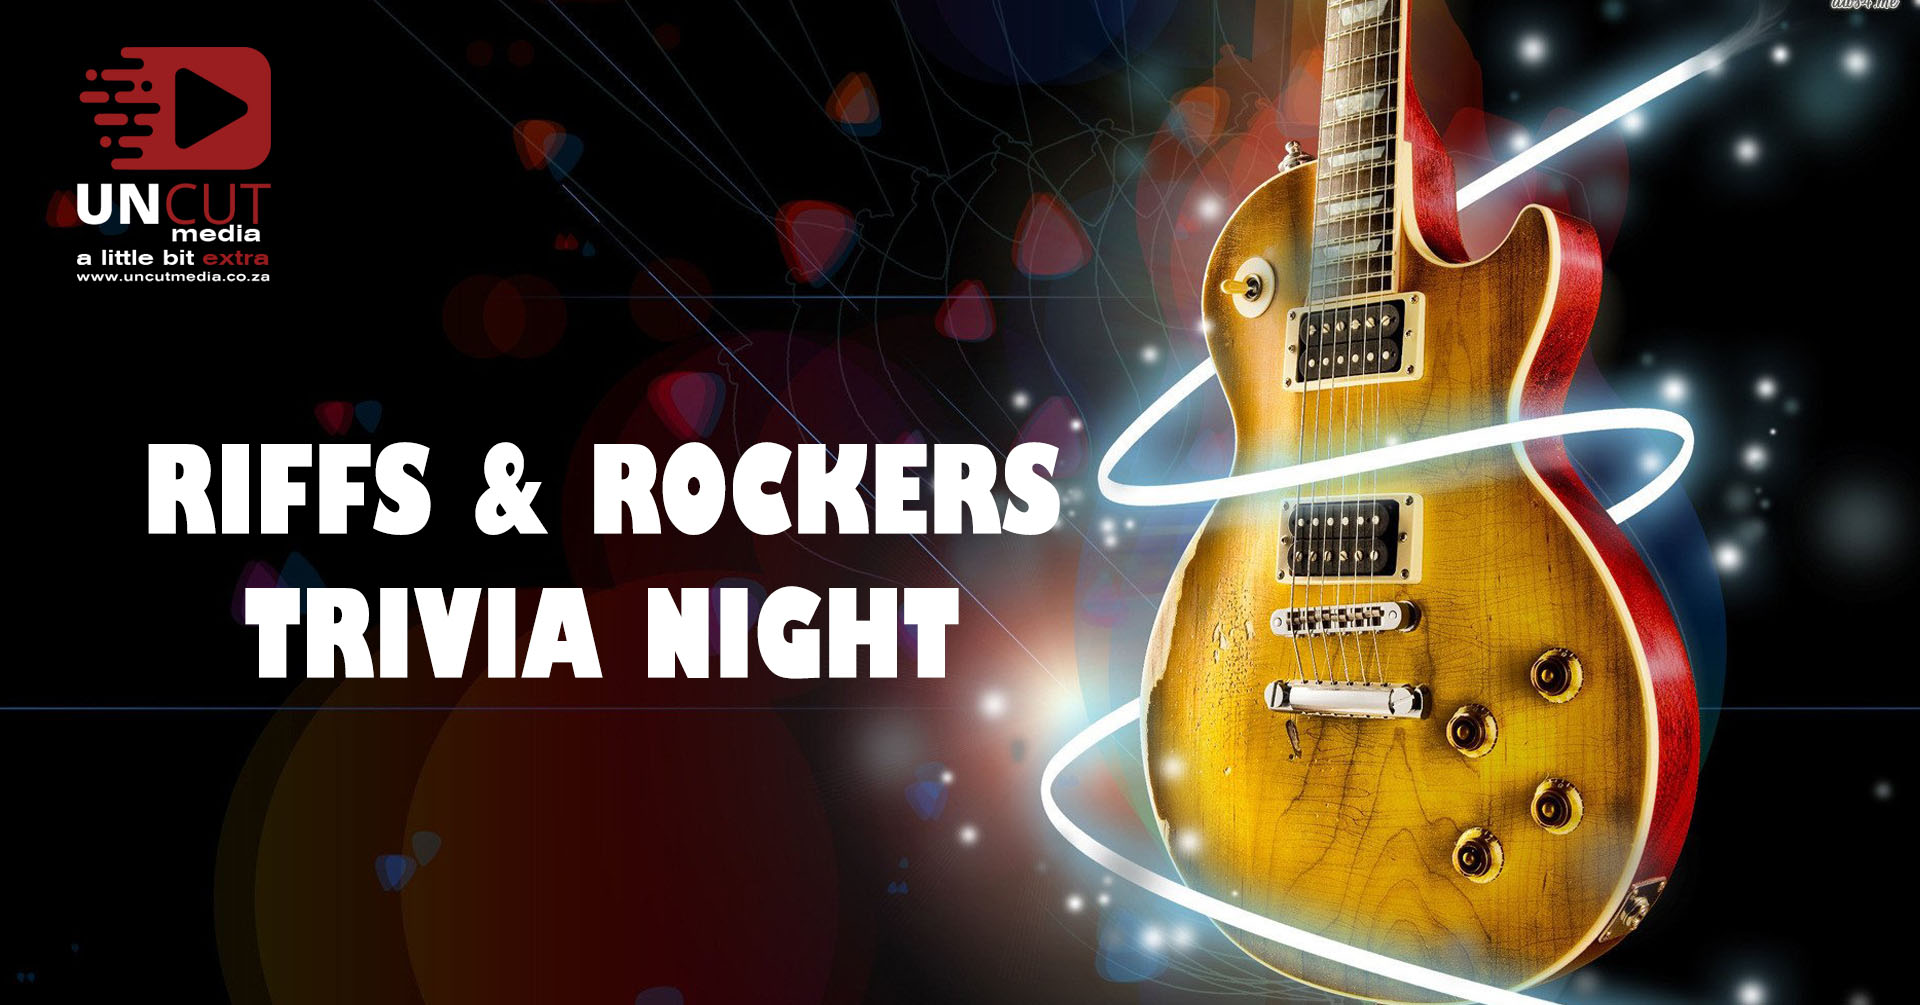 Riffs and Rockers Trivia Night